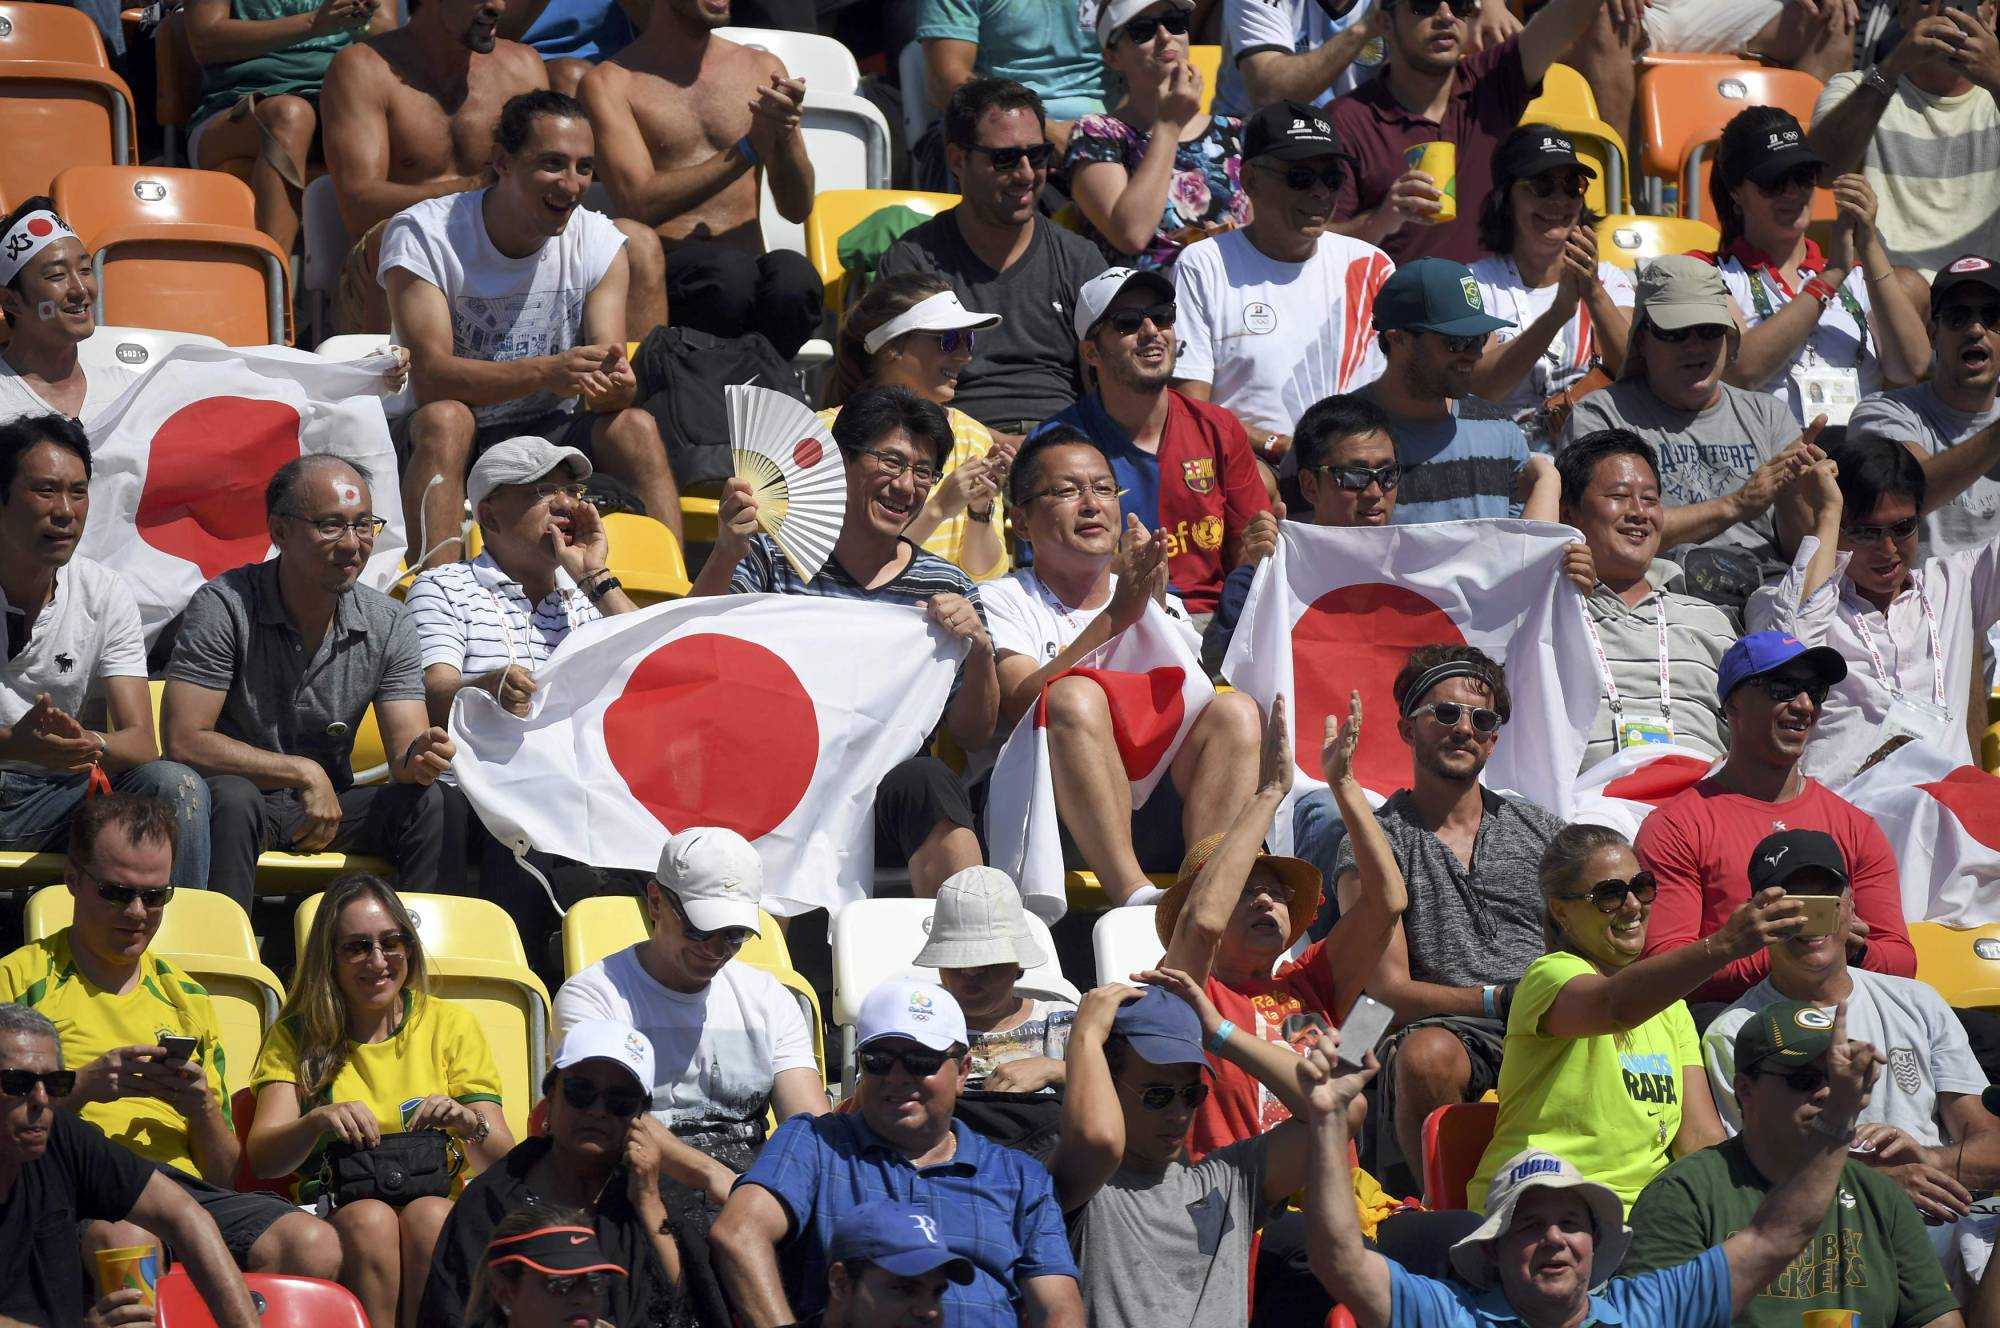 Fans cheer during a match between Kei Nishikori and Britain's Andy Murray at the Rio Olympics on Aug. 13, 2016, in Rio de Janiero. | REUTERS